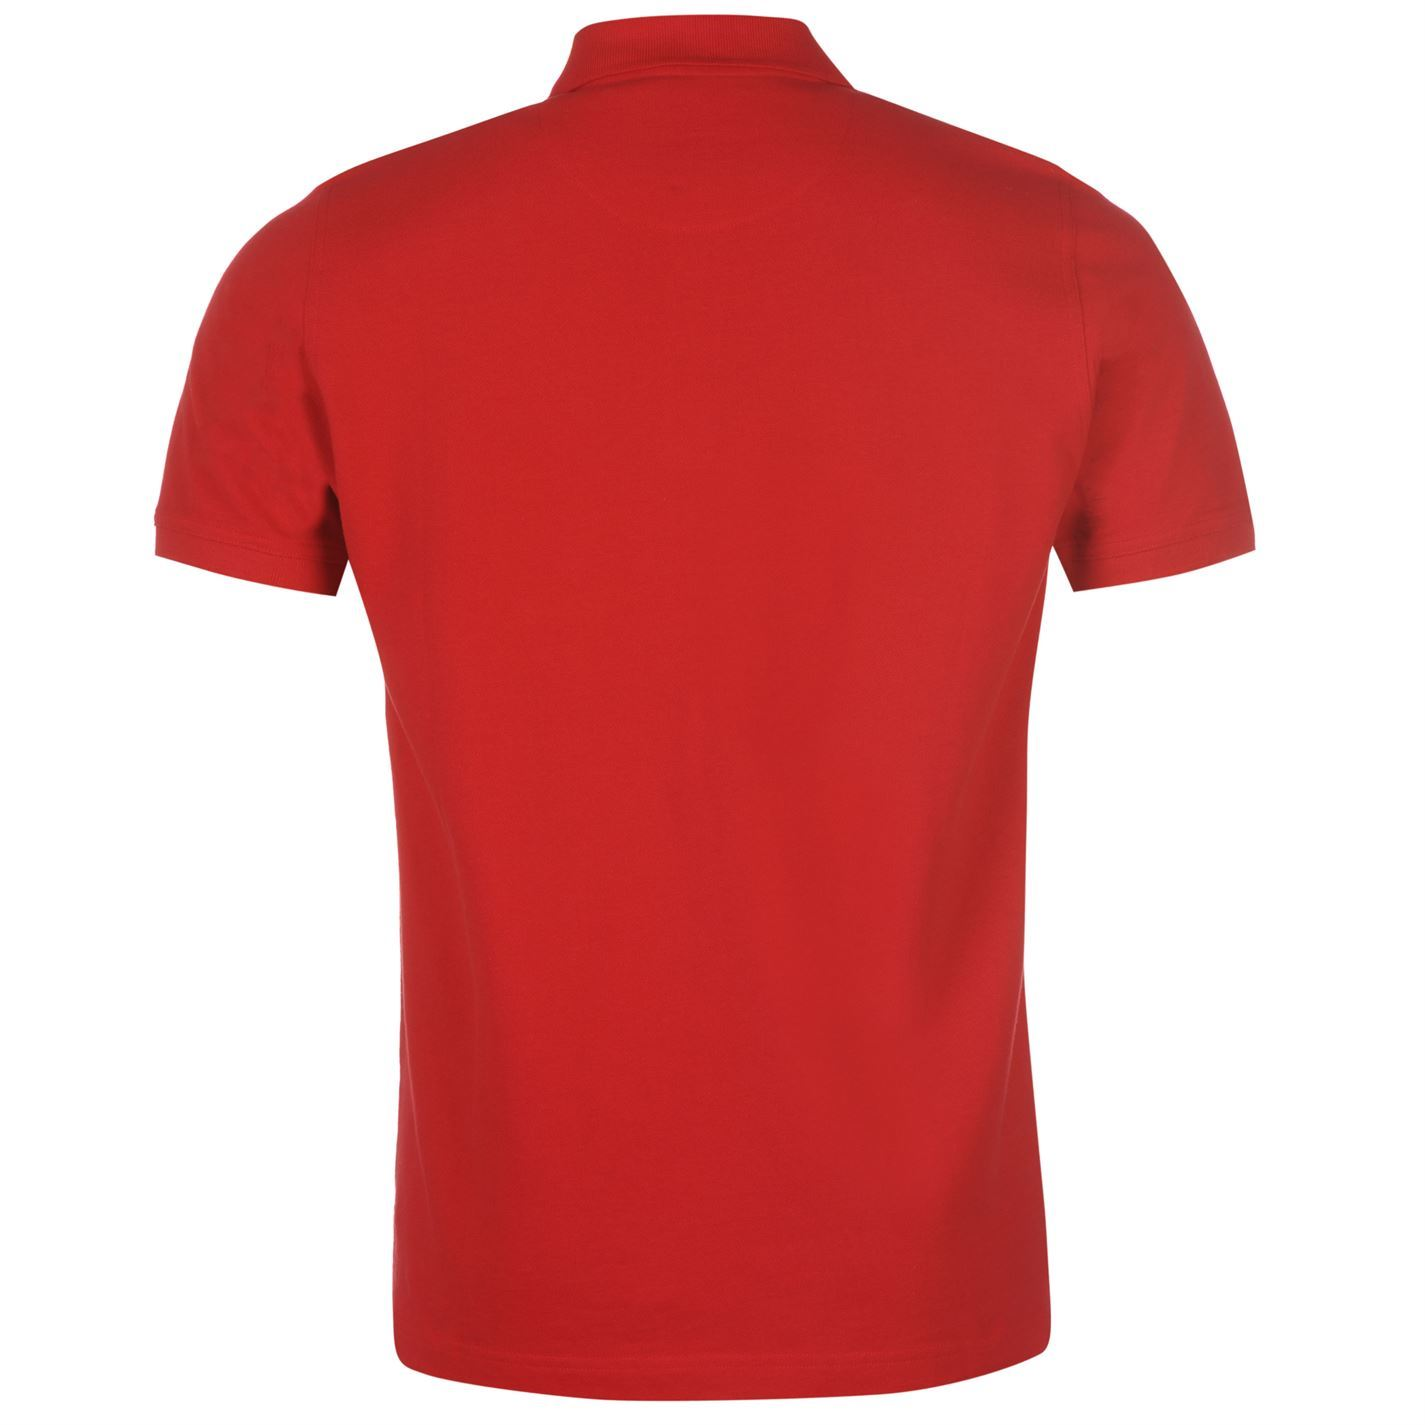 How to plain a wear red shirt catalog photo